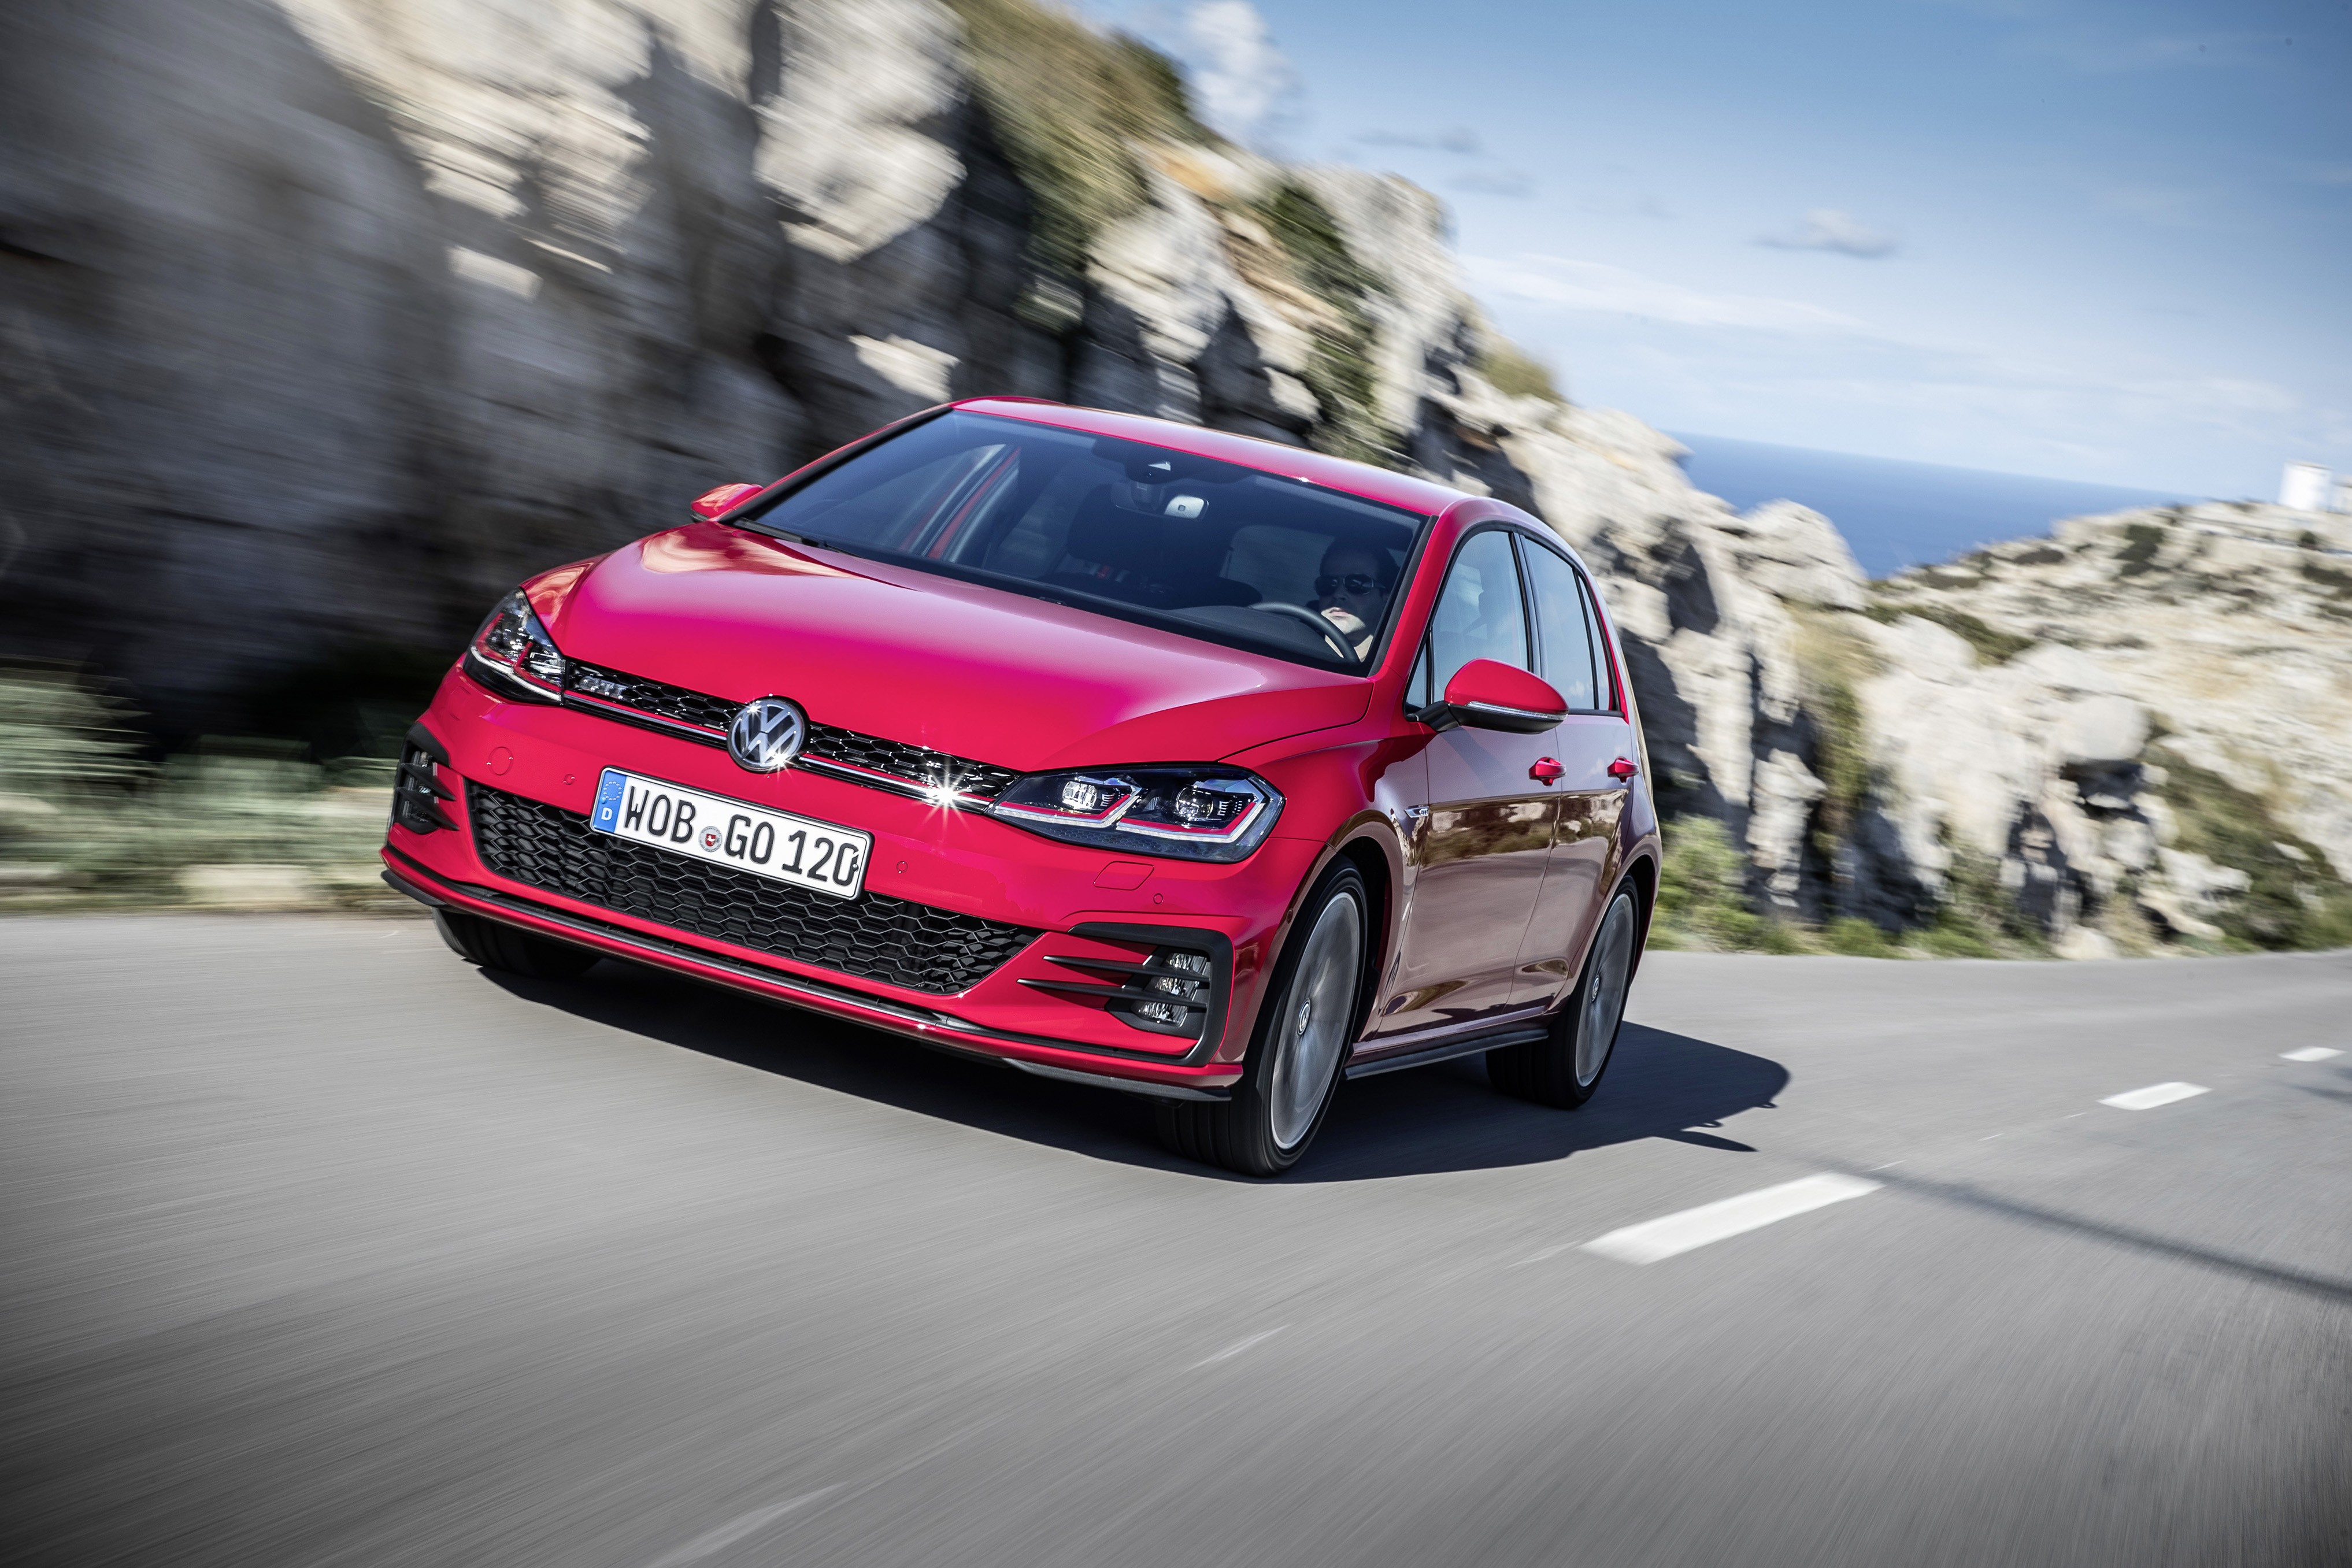 2018 volkswagen golf gti interior and exterior detailed in new videos and photos autoevolution. Black Bedroom Furniture Sets. Home Design Ideas